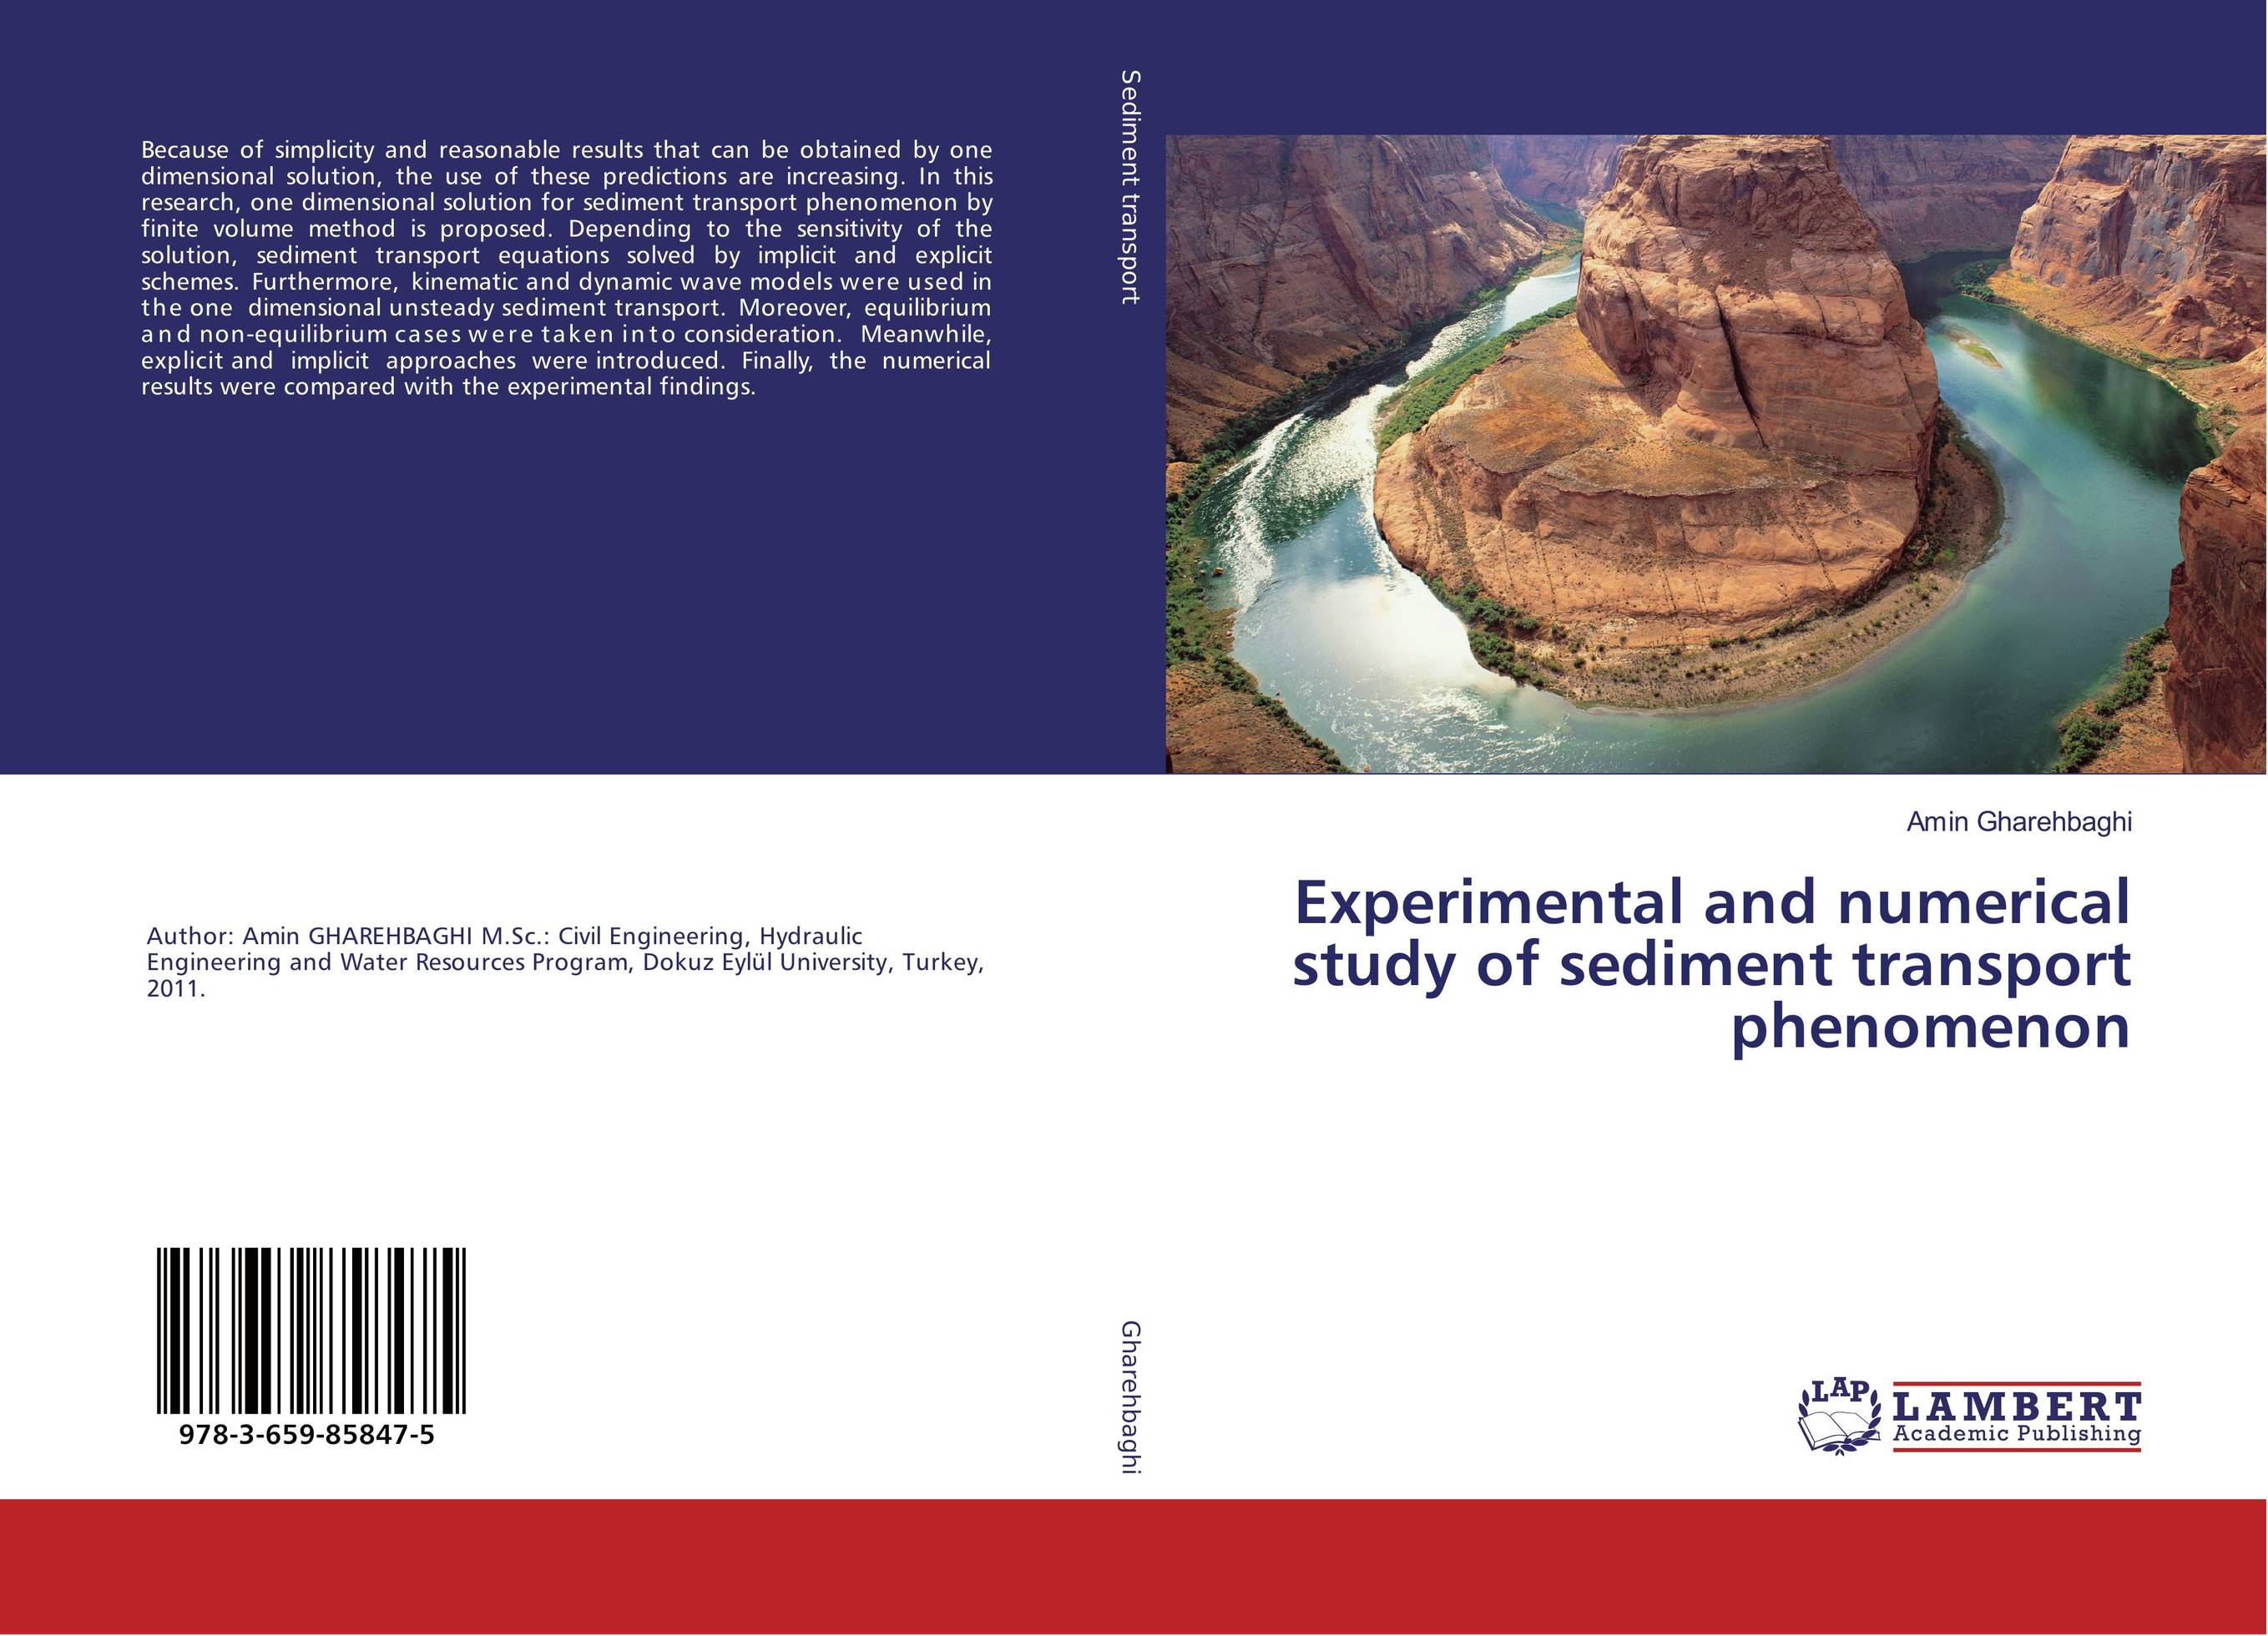 Experimental and numerical study of sediment transport phenomenon analytical and numerical approximation solution of bio heat equation